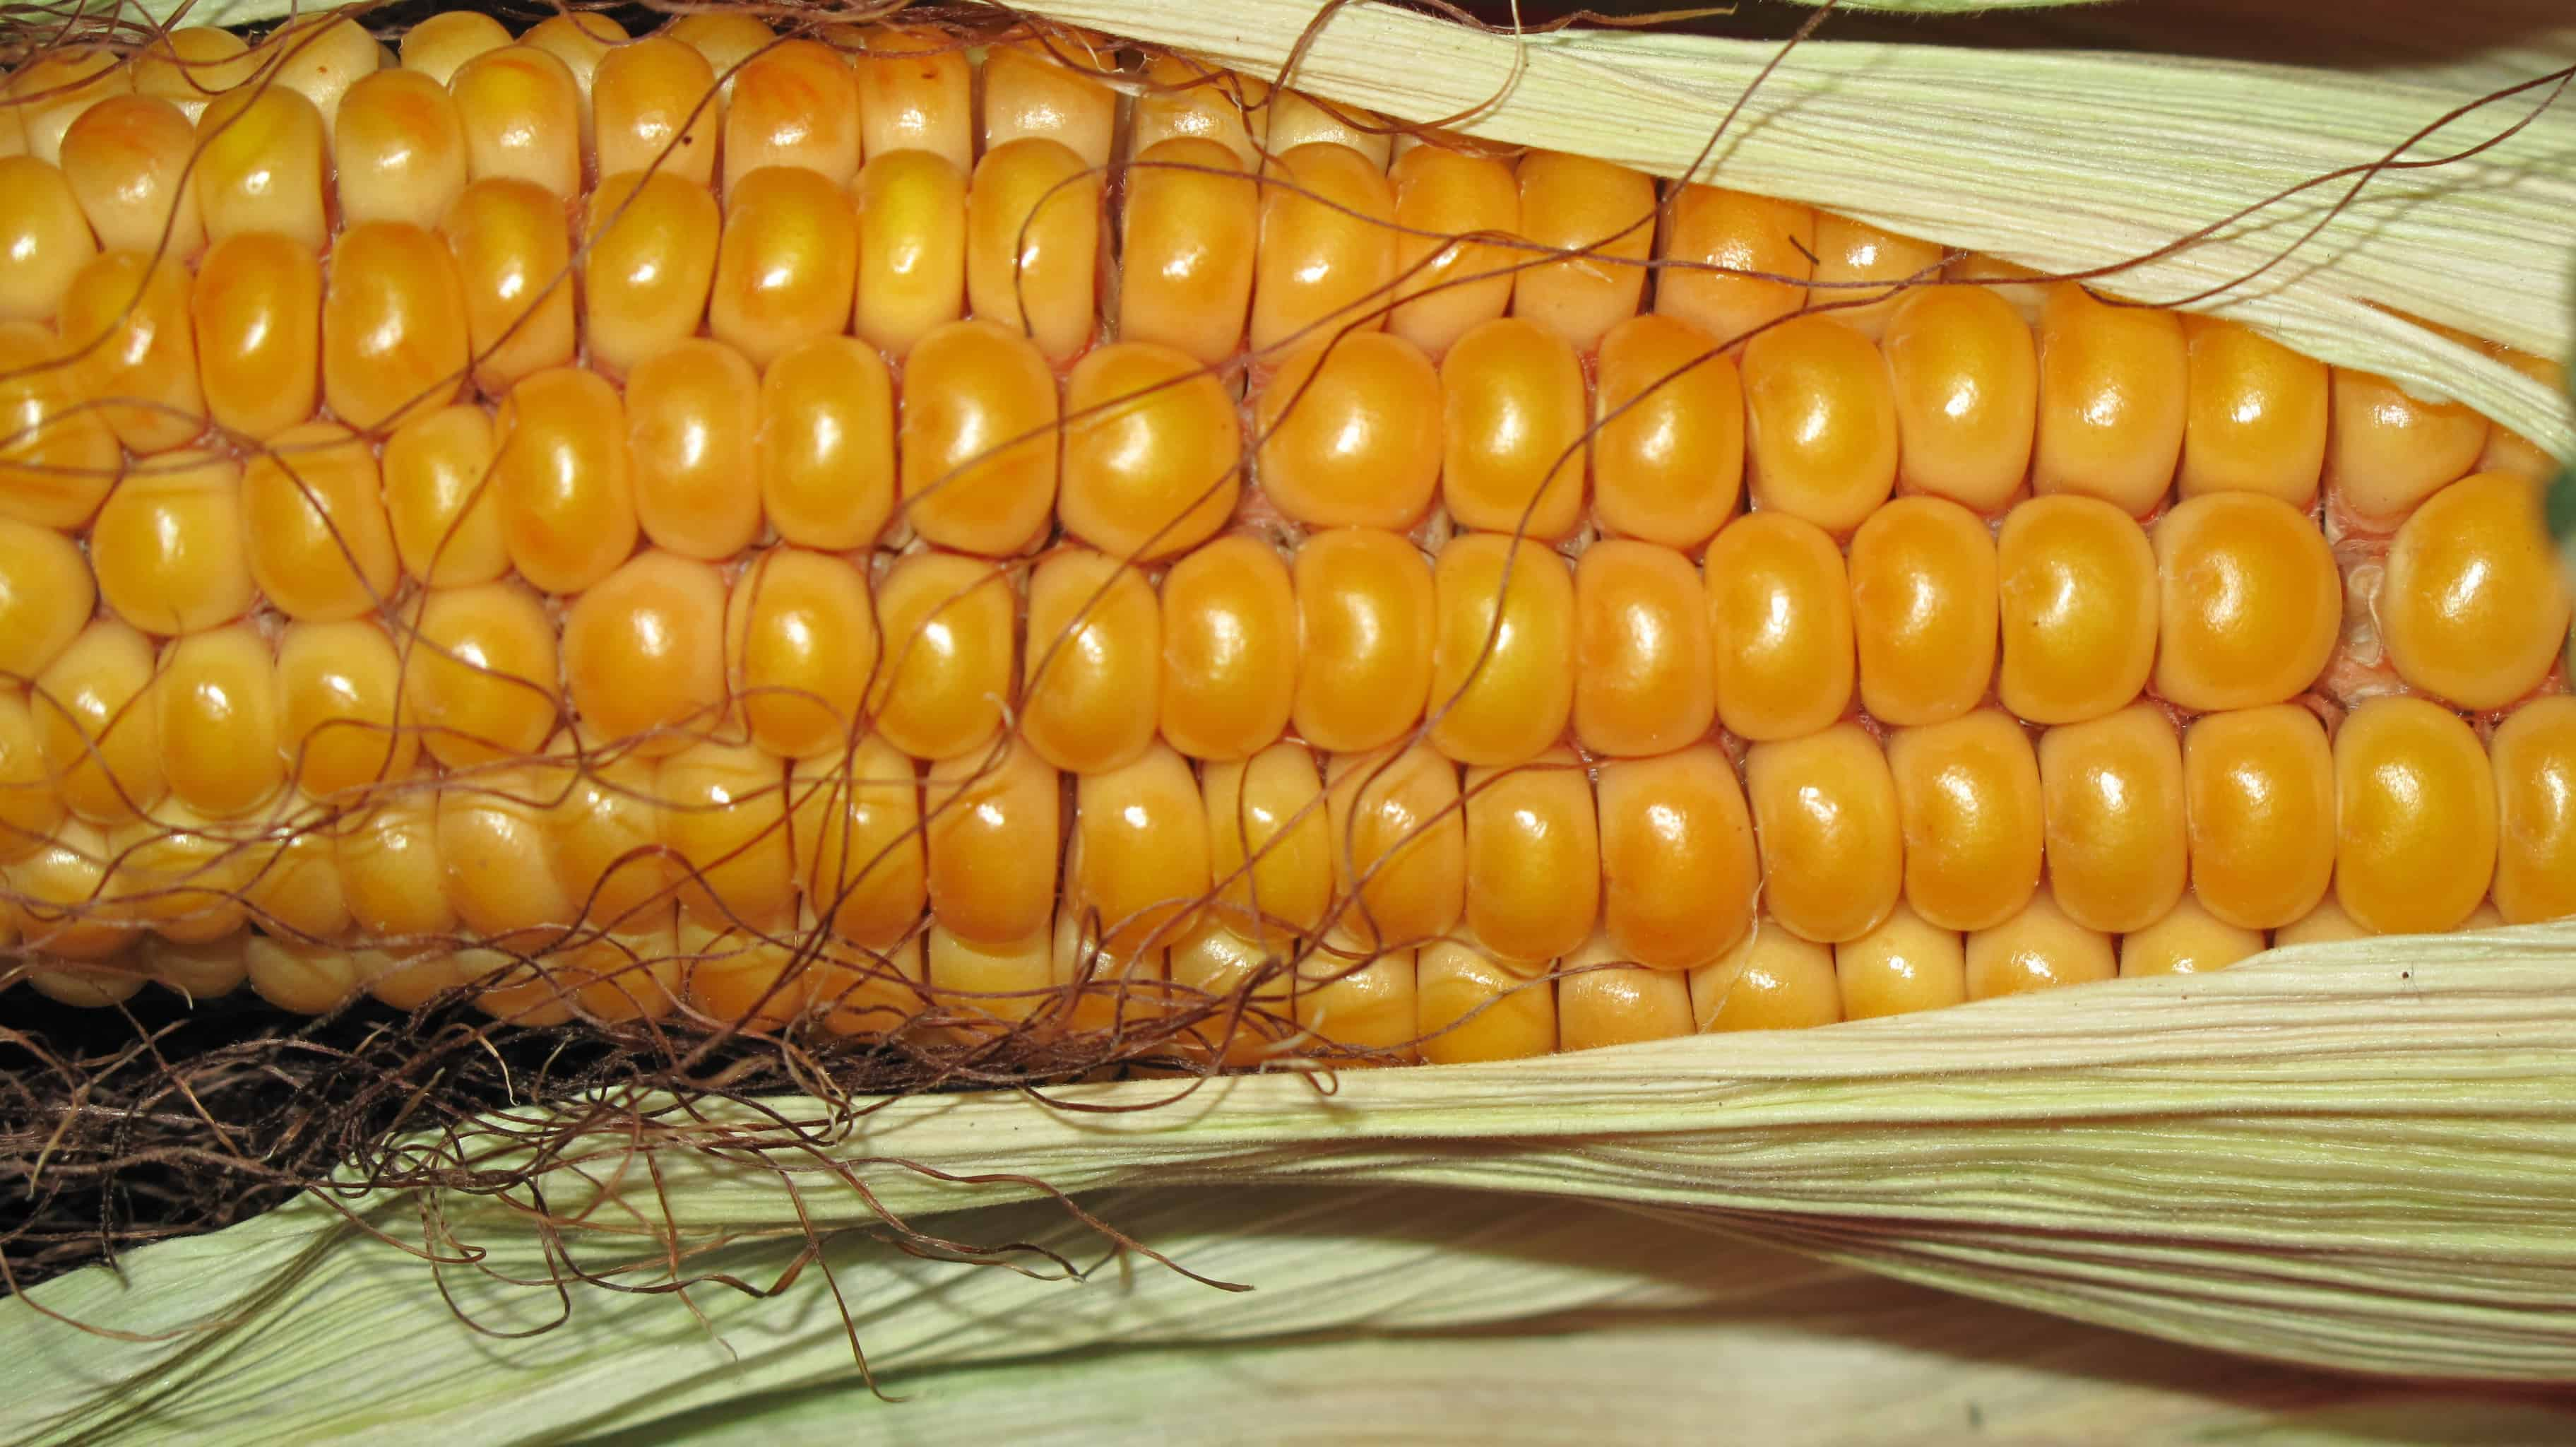 Drought tolerant African crops are key for food security